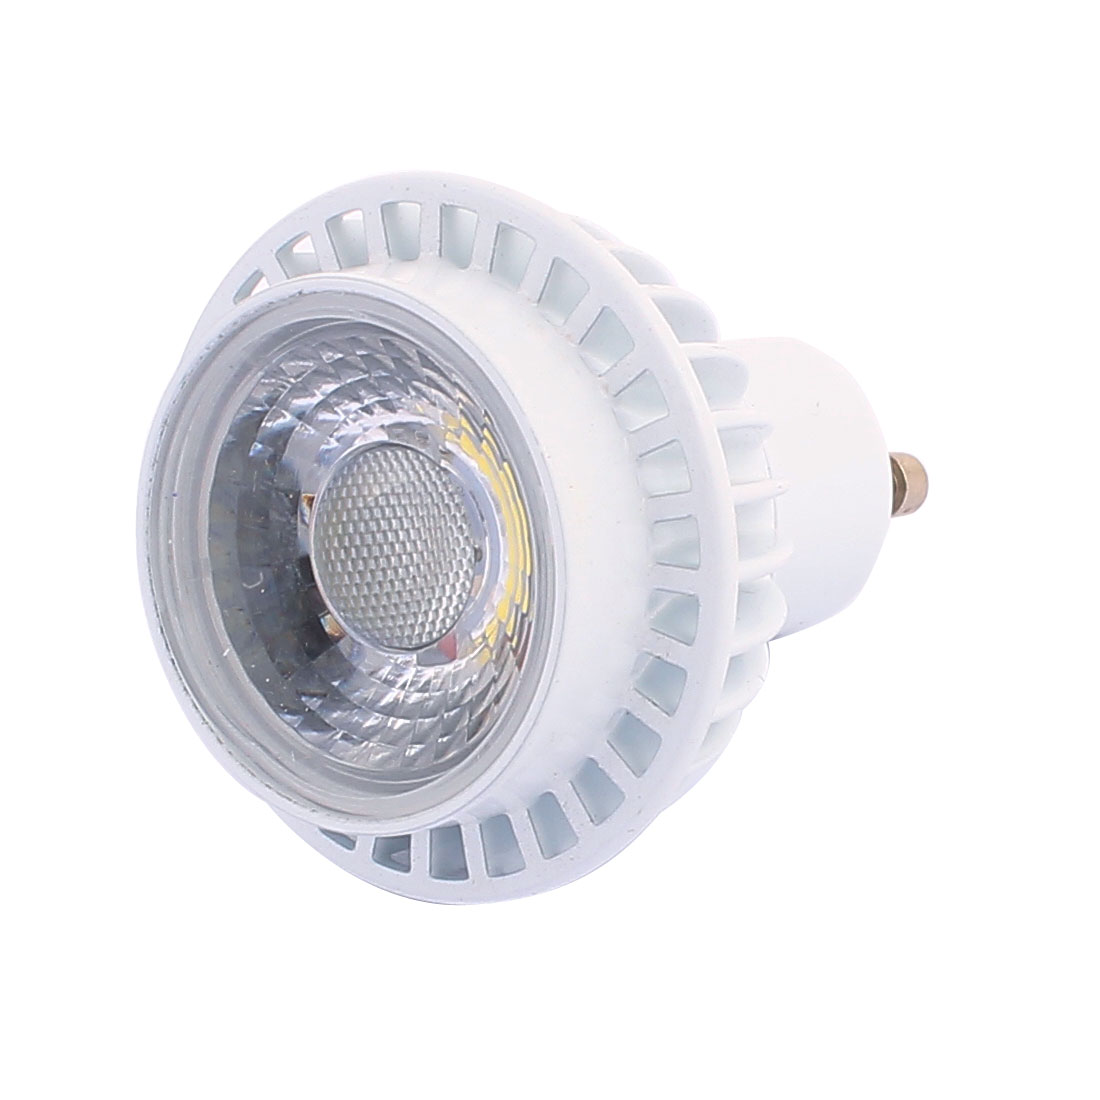 AC85-265V 3W Bright GU10 COB LED Spot Down Light Lamp Energy Saving Pure White